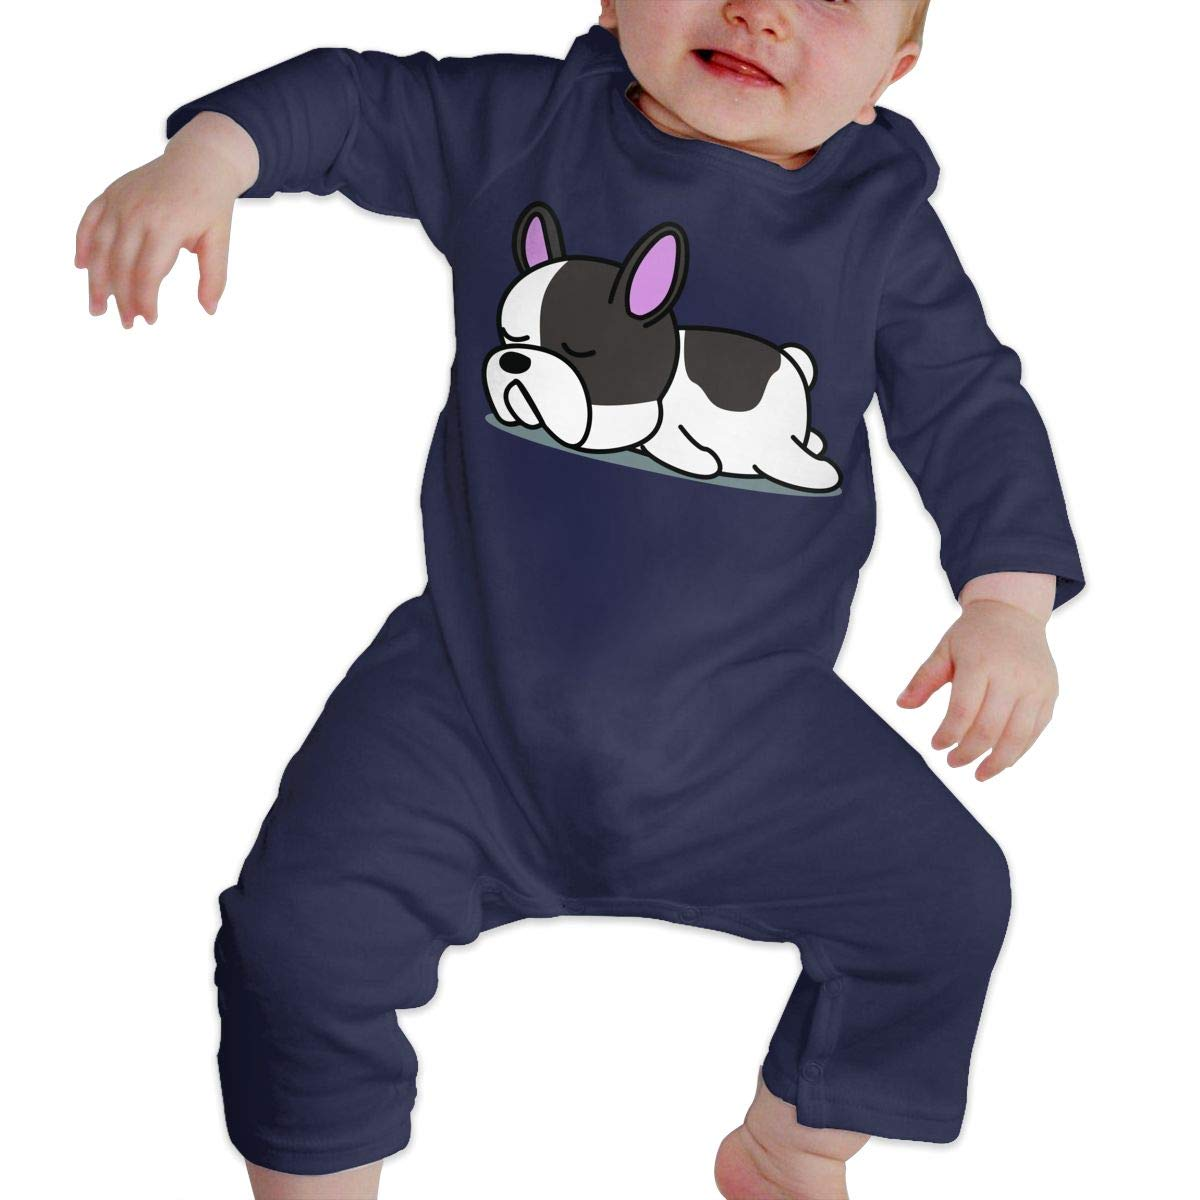 YUE--3BODY Sleepy Lazy French Bulldog Newborn Kids Long Sleeve Infant Cotton Bodysuits